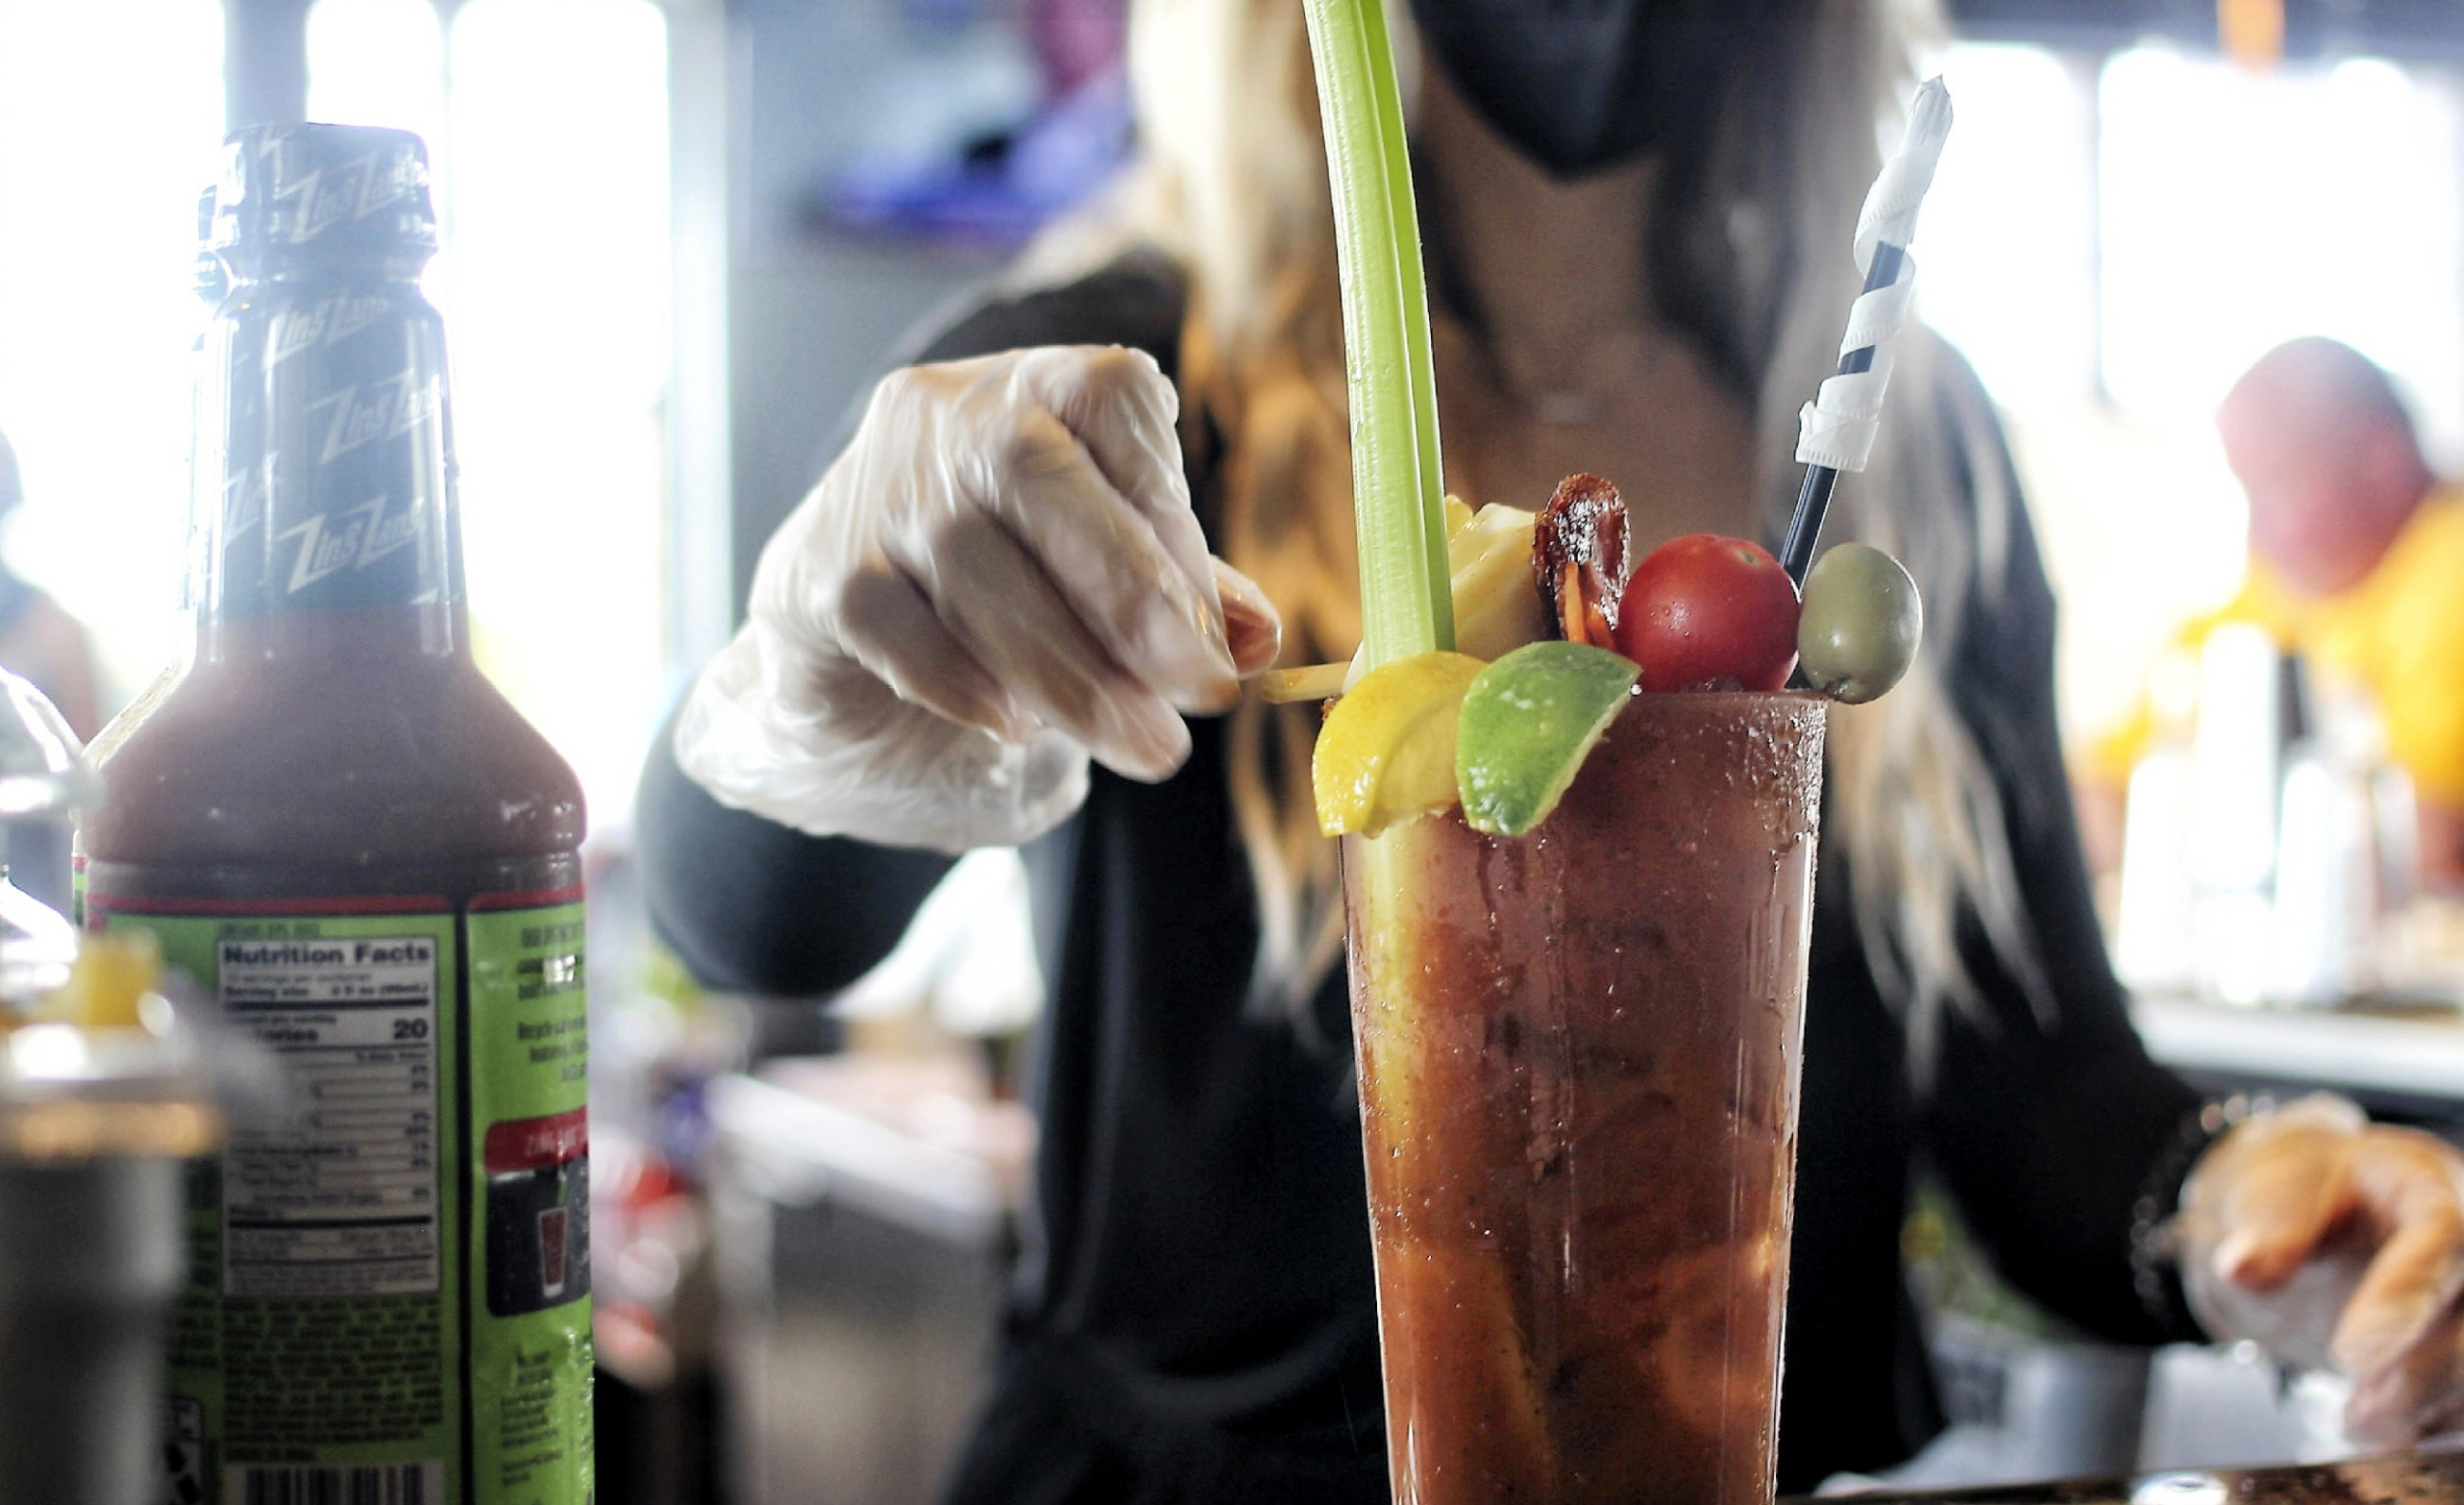 Bartenders at Bar Louie's newest location, Bar Louie Granger, know how to build the perfect Bloody Mary for their new Brunch menu.